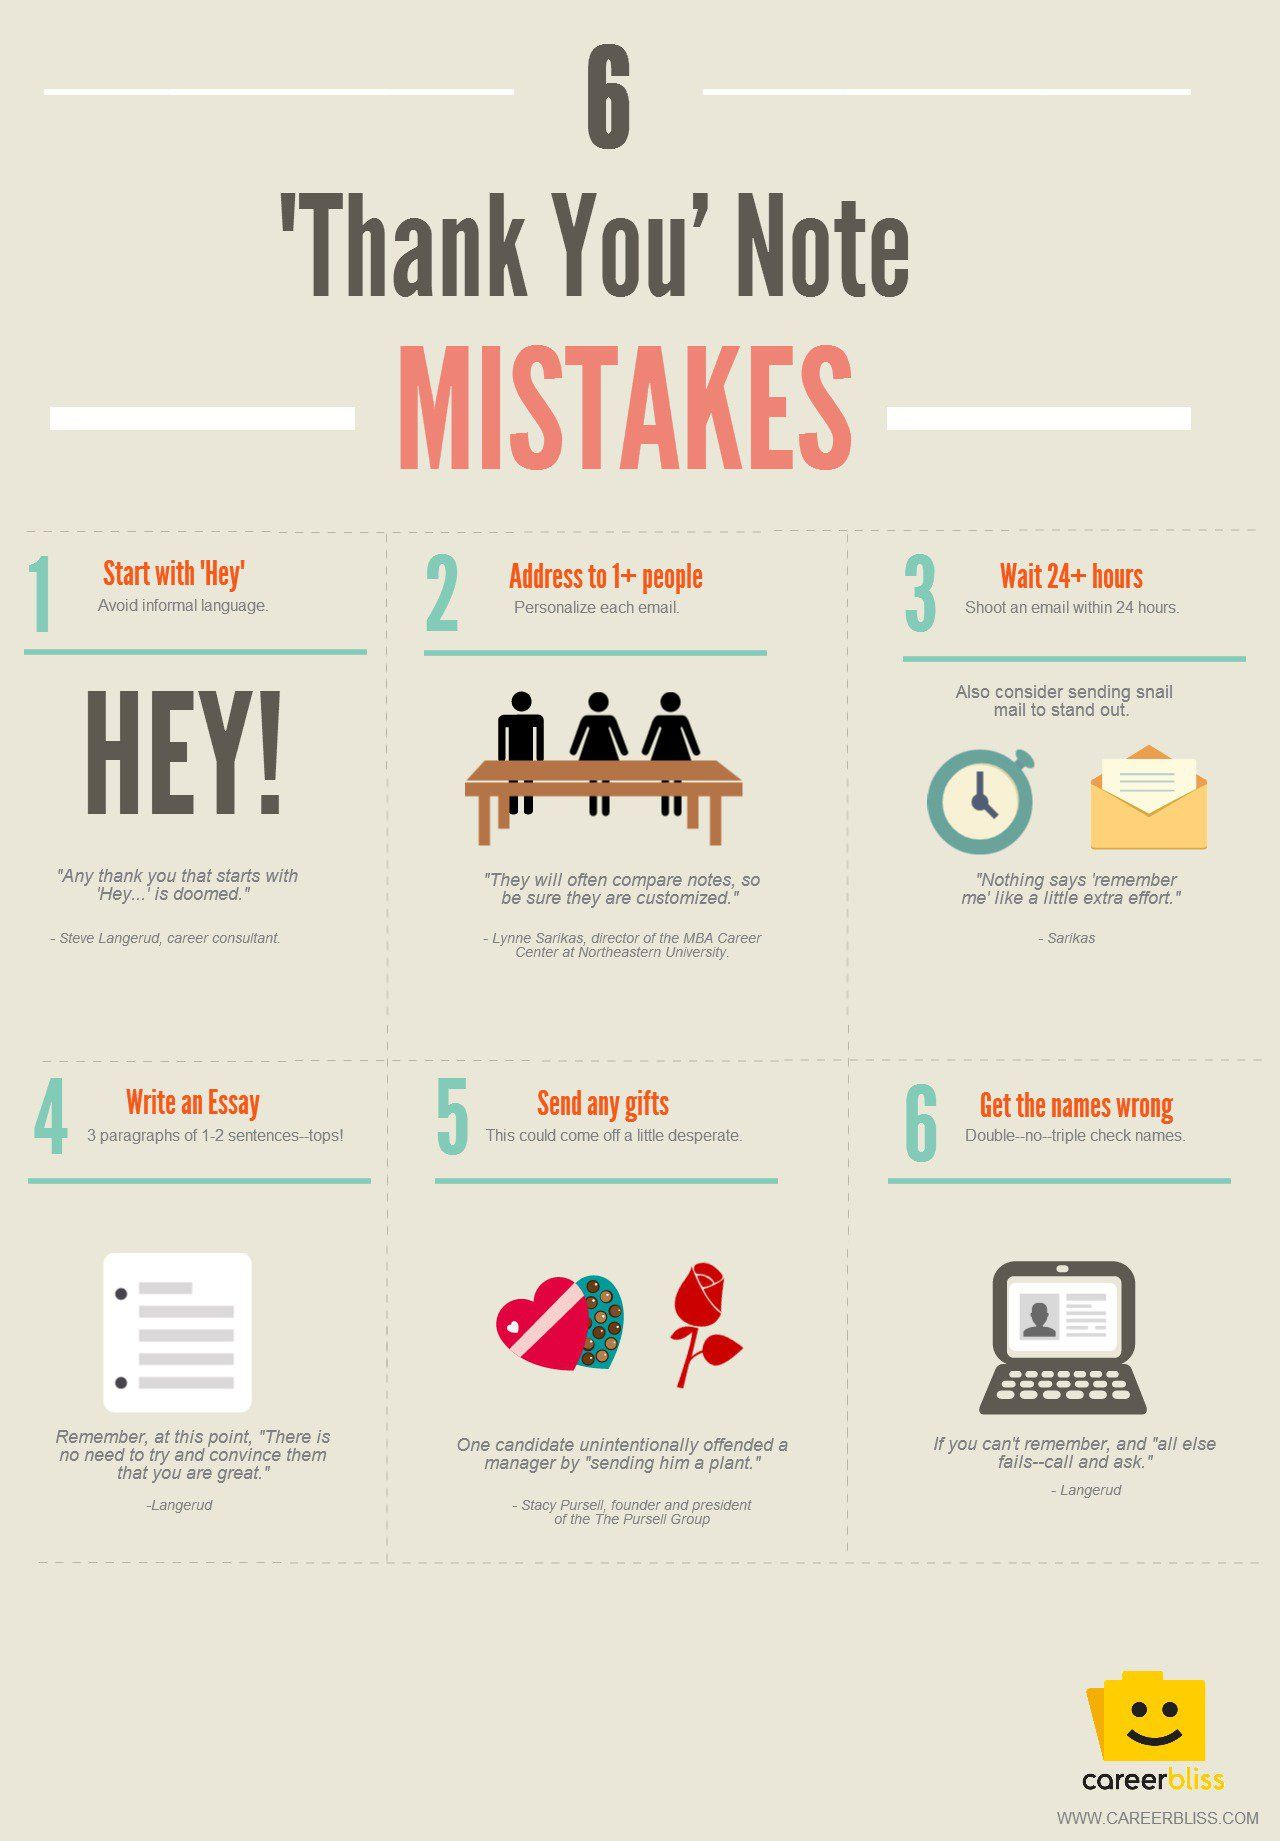 6 Thank You Note Mistakes That Could Very Easily Ruin Your